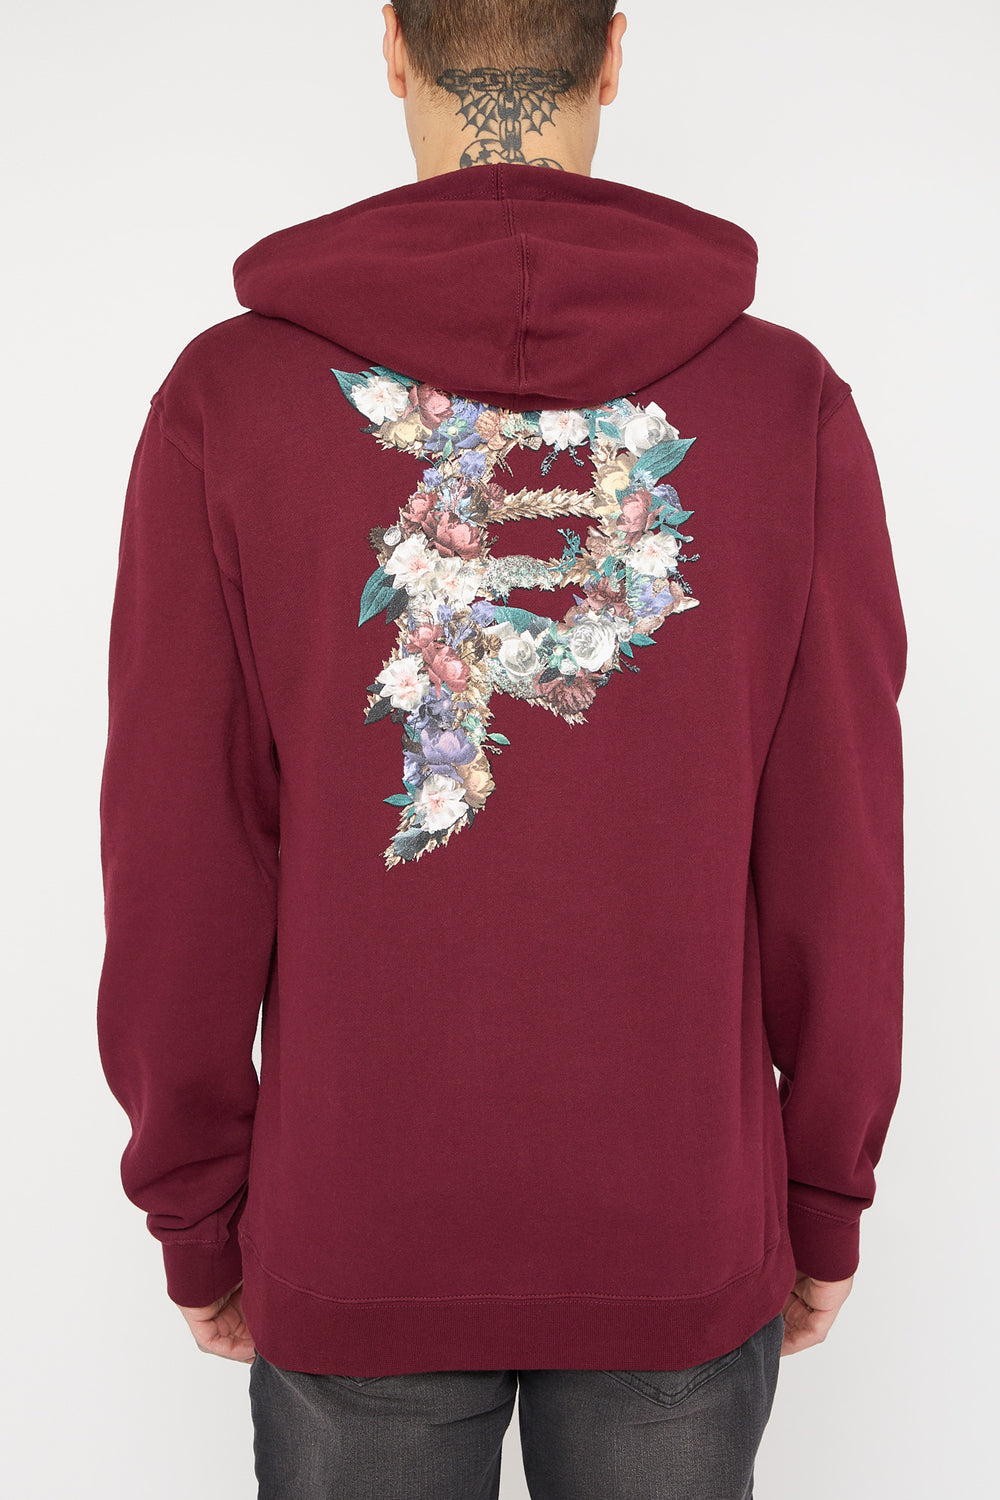 Primitive Burgundy Floral Dirty P Hoodie Burgundy